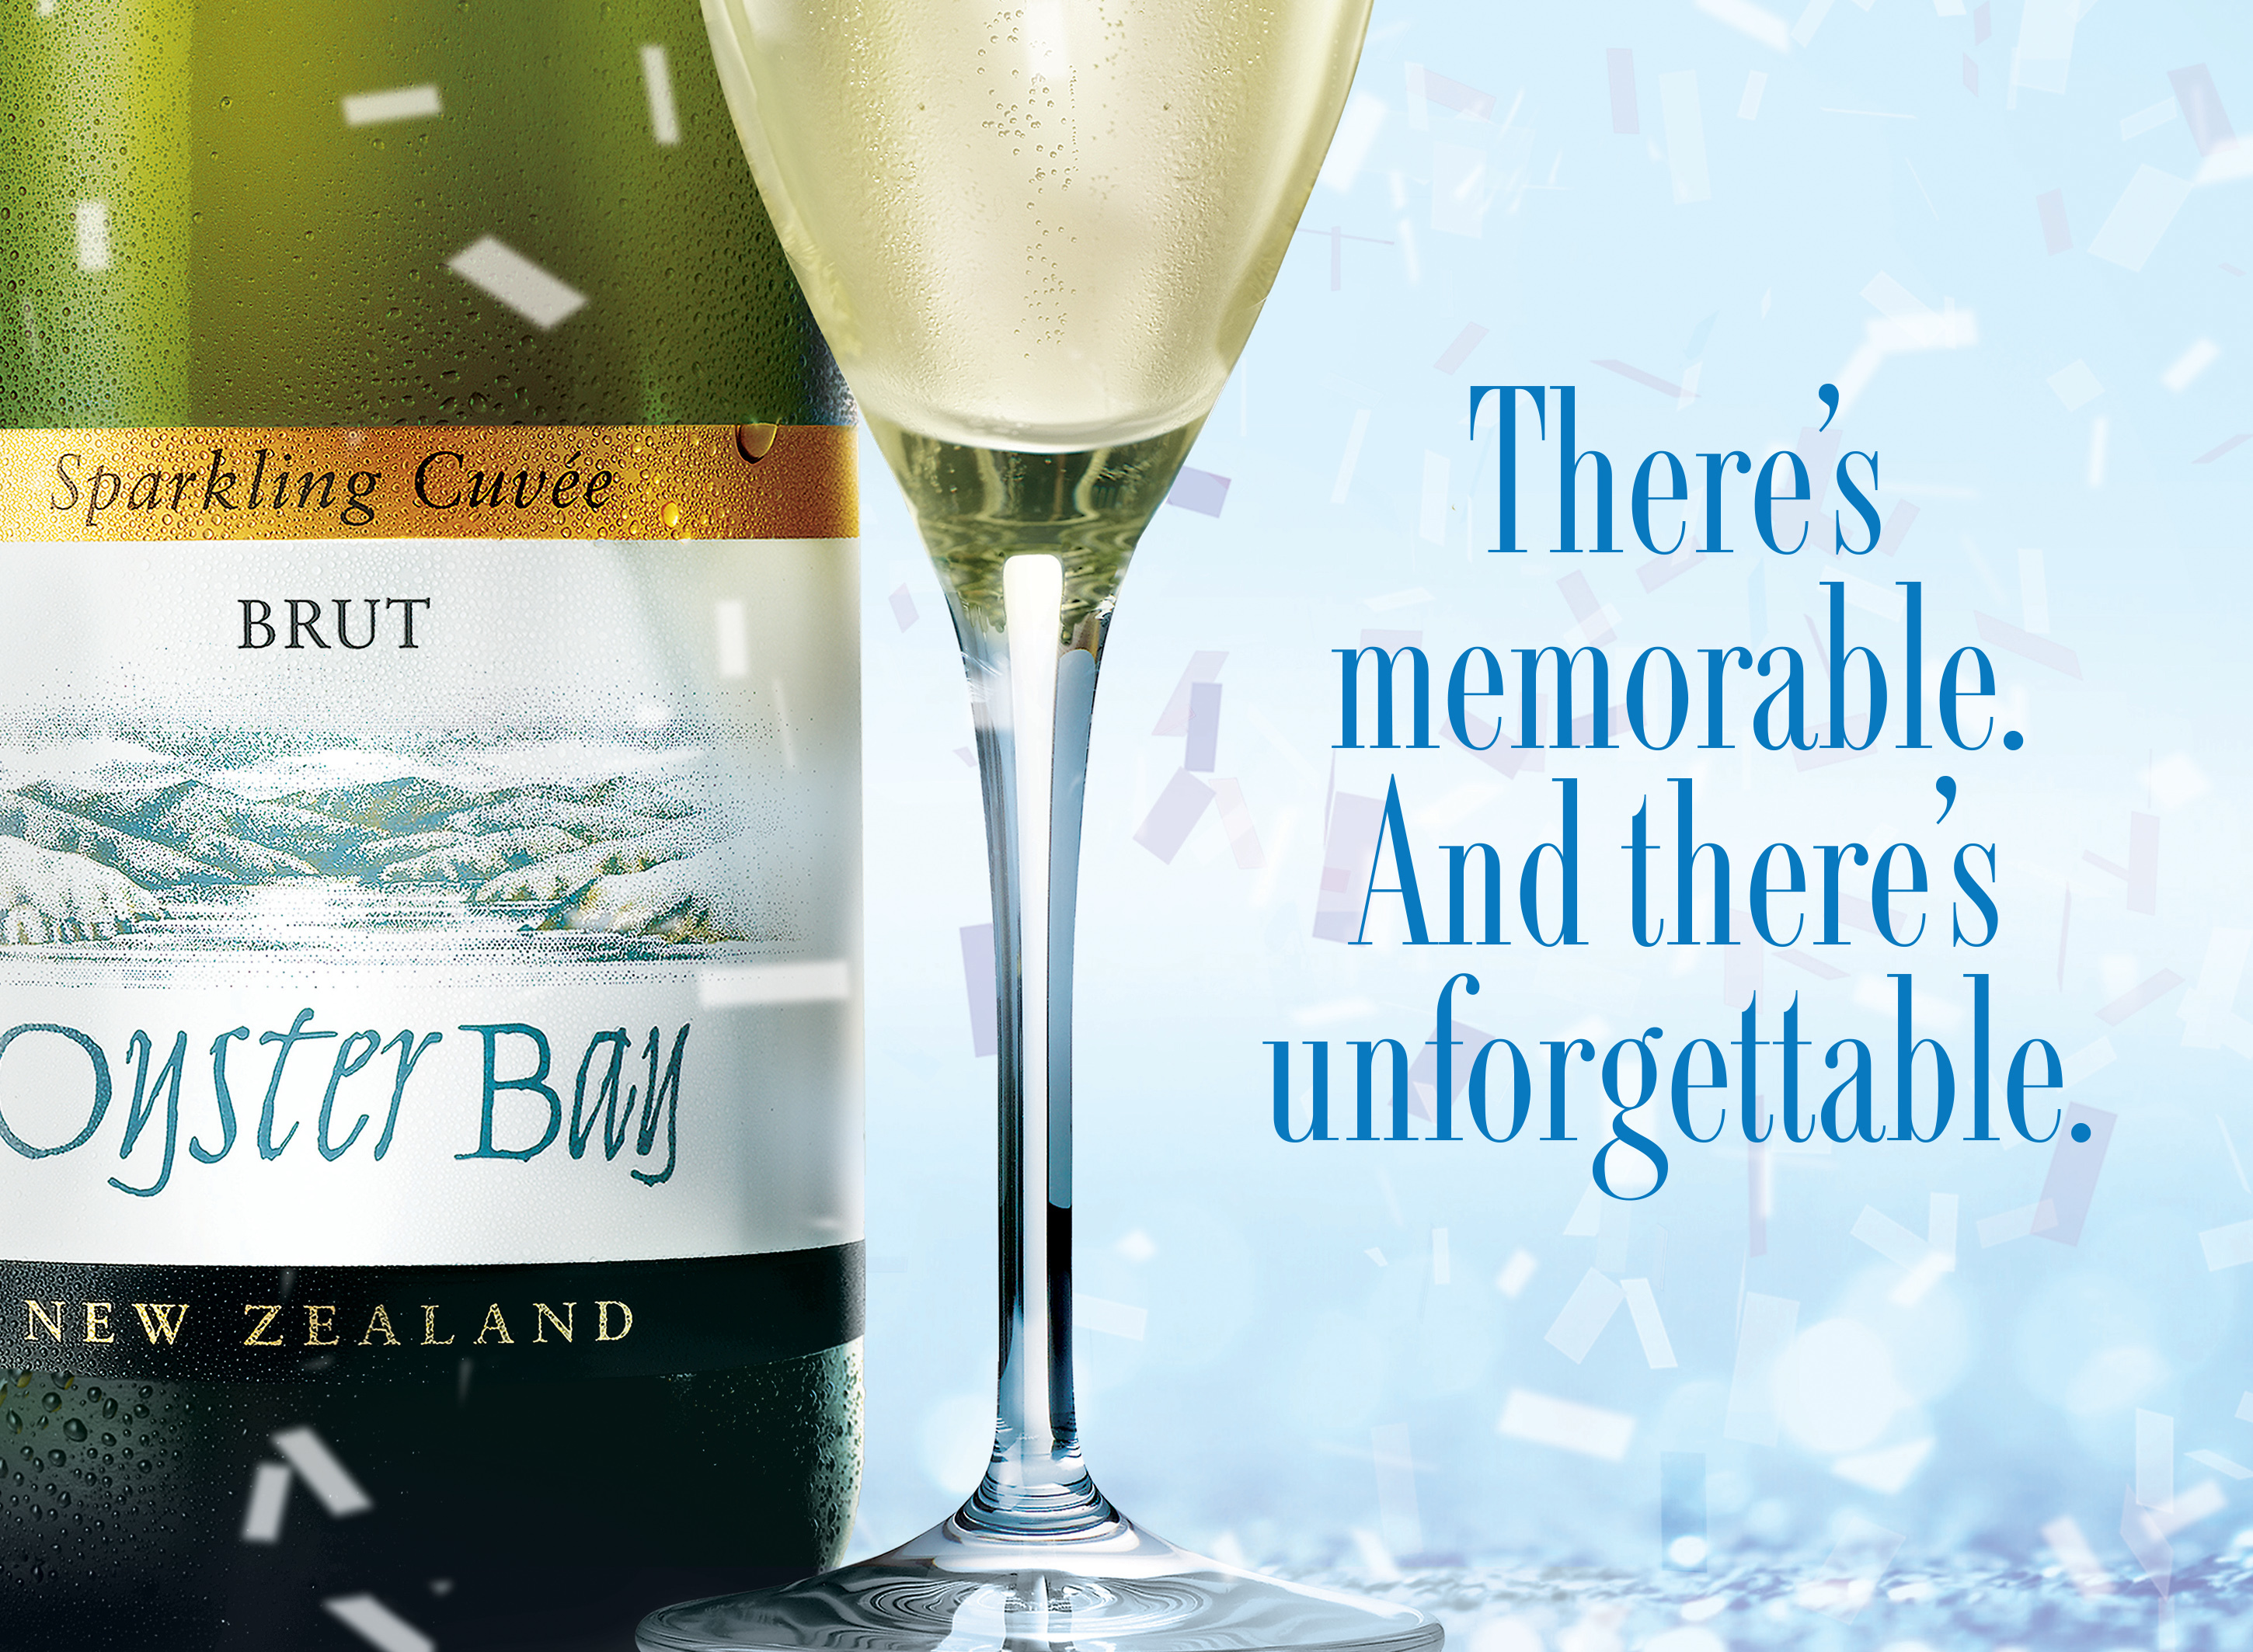 oyster bay sparkling cuvee brut bottle glass tagline